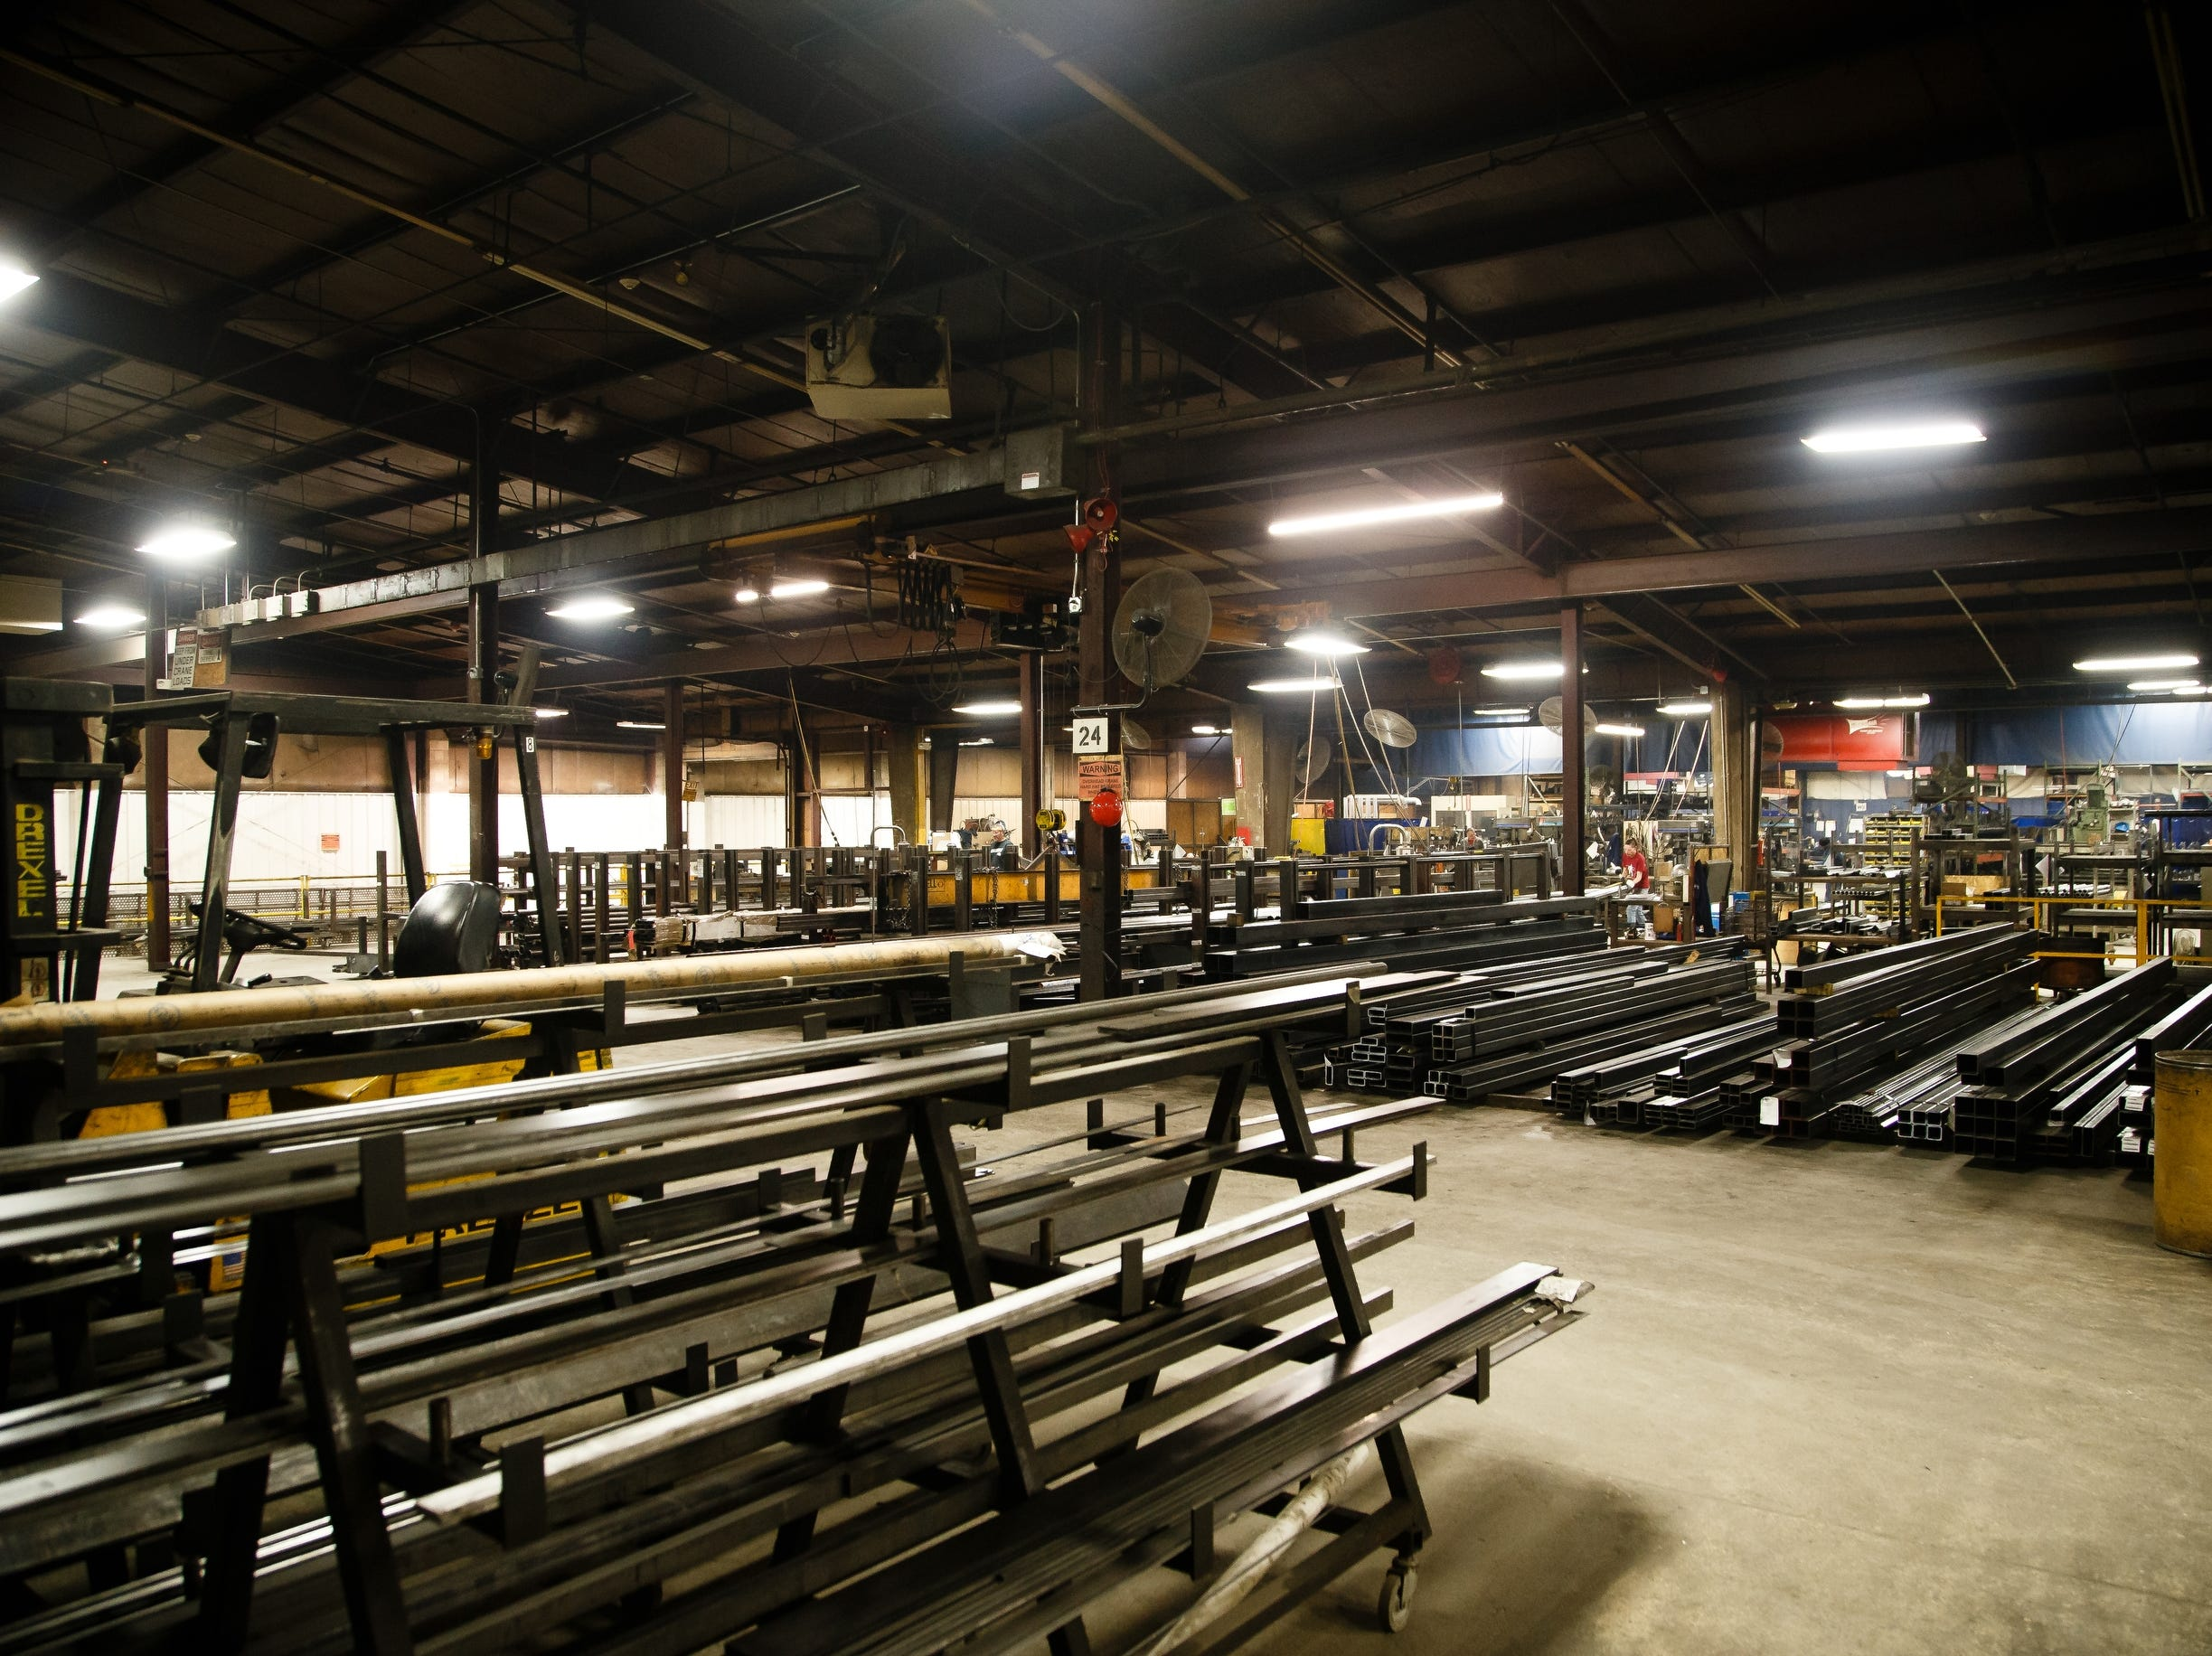 Raw metal sits ready to be turned into various models of basketball backstops and accessories at the AAI facility in Jefferson on Wednesday, March 13, 2019. AAI is the official supplier of basketball back stops for NBA, NCAA, WNBA and the NBA G-League. They make all their products, as well as a full line of gymnastics and tumbling equipment out of this factory in Jefferson where they were founded.